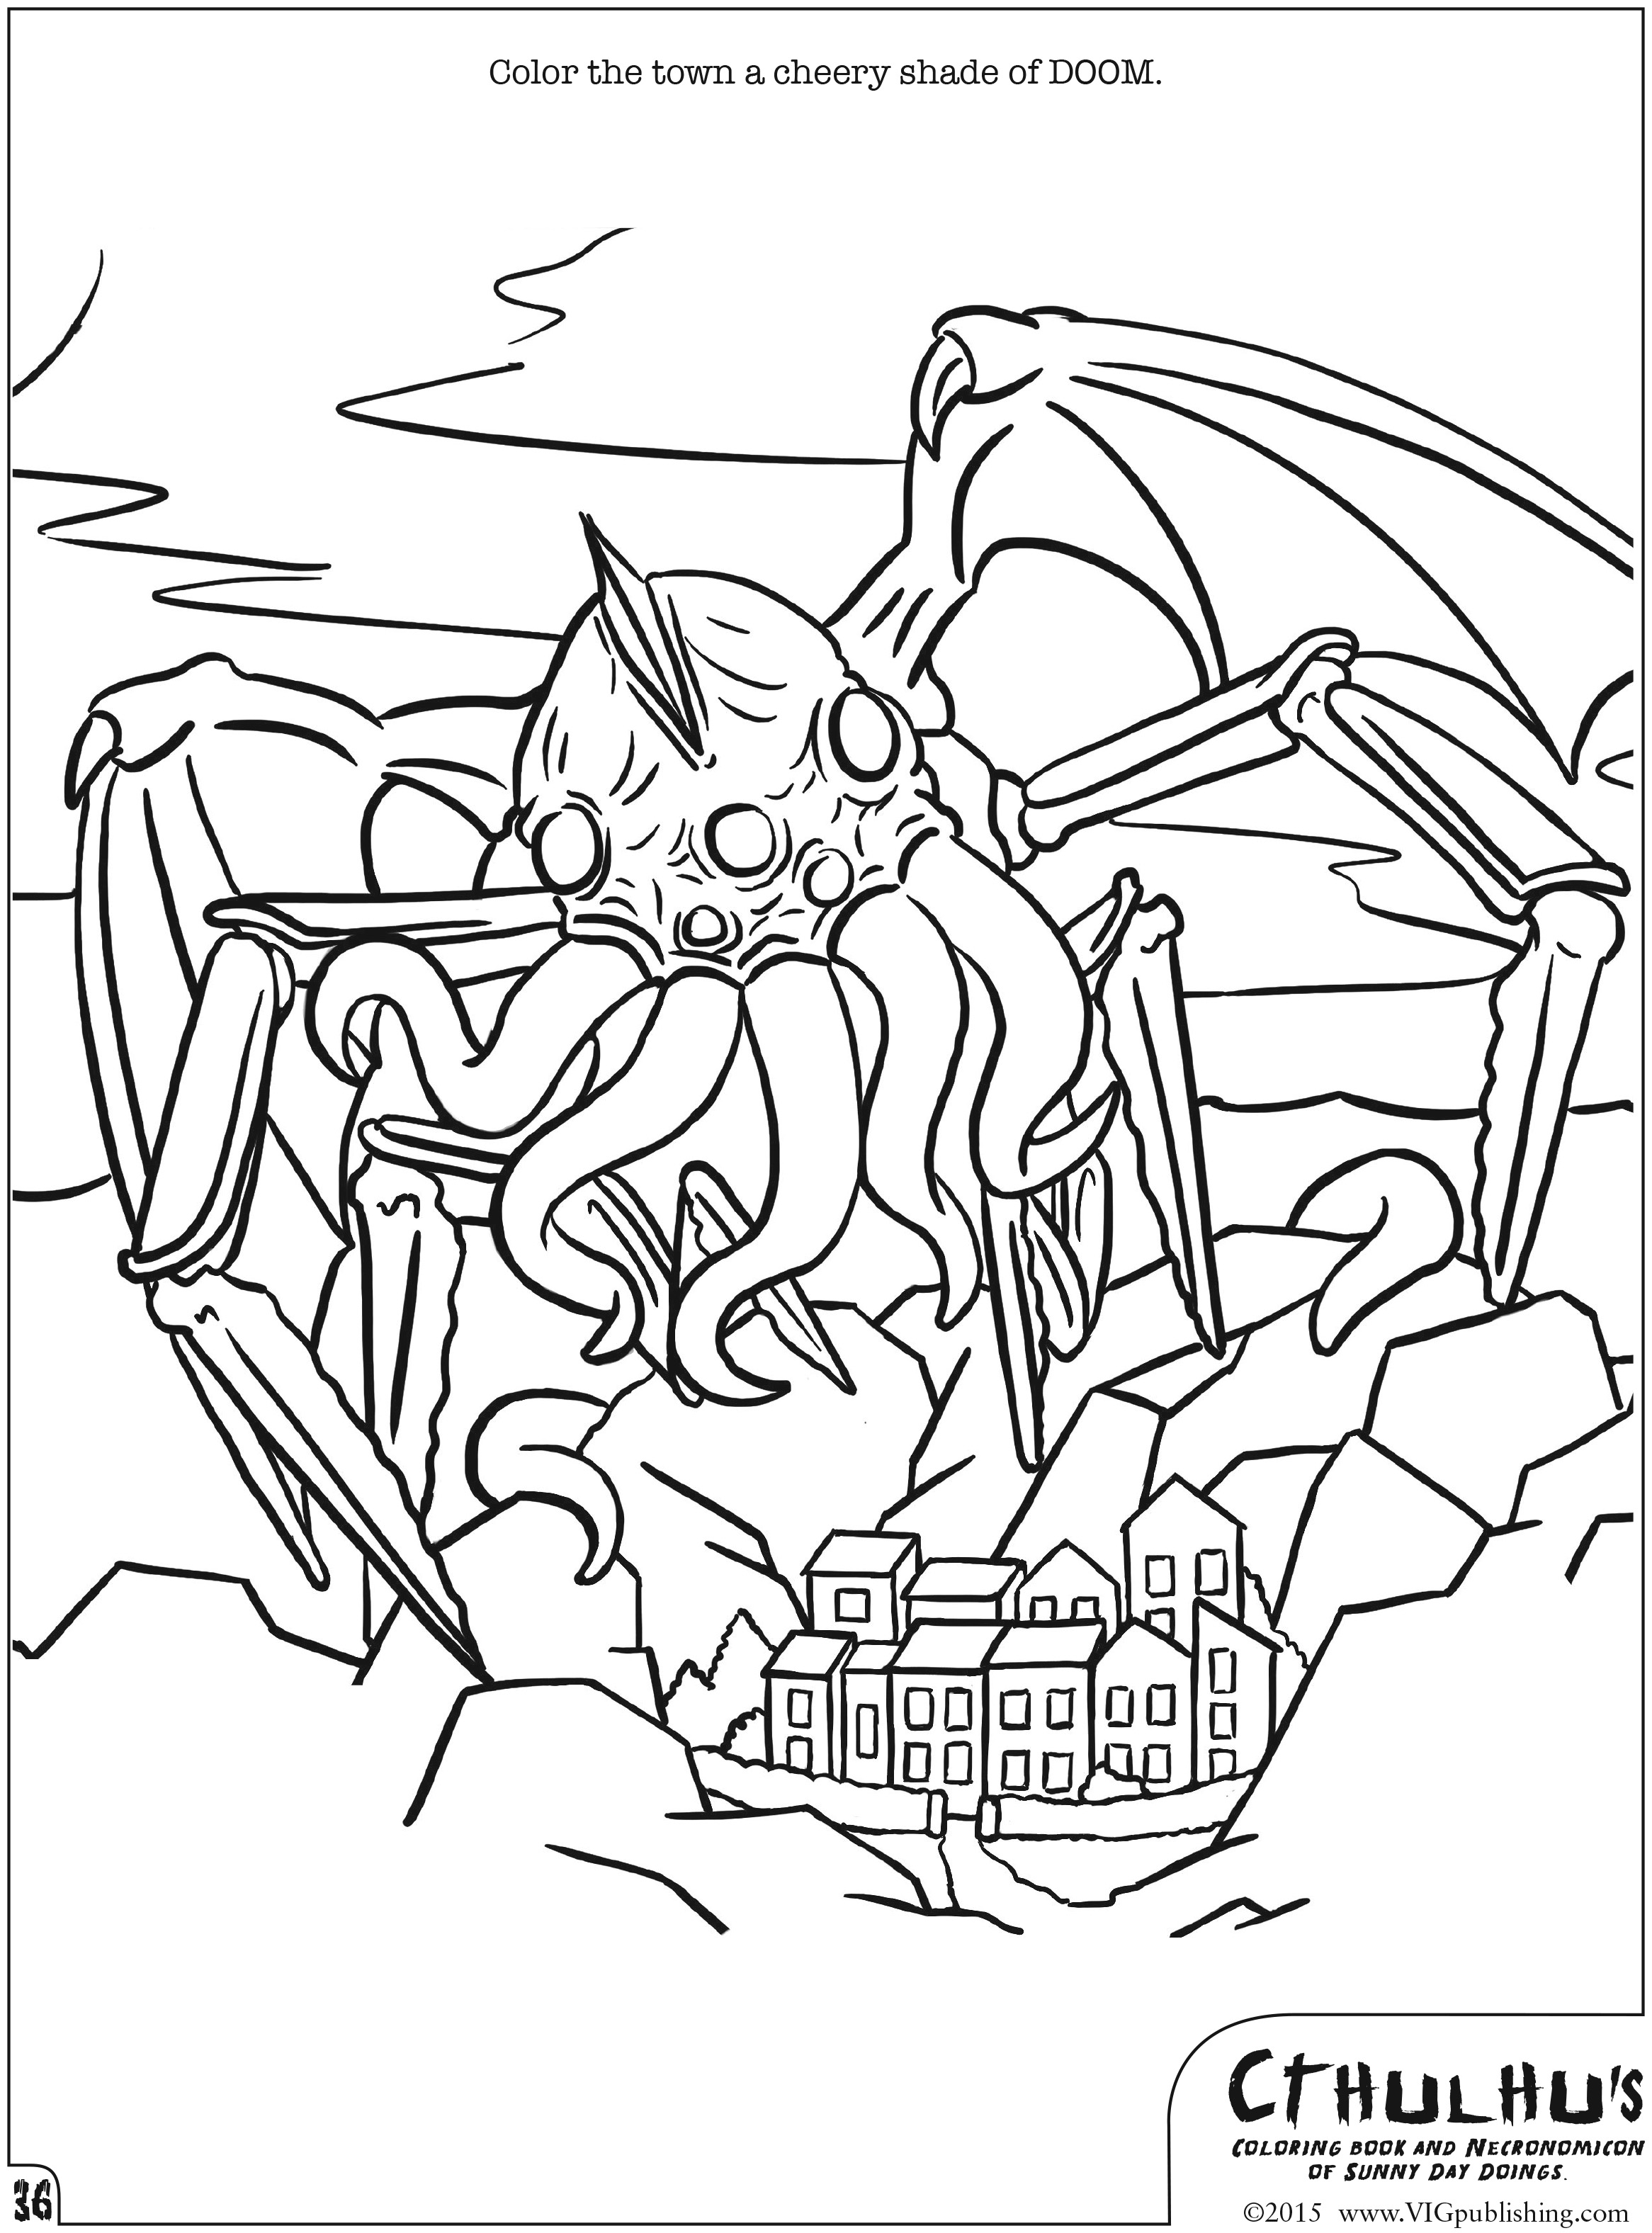 List of Cthulhu Coloring Book Pdf Pict - Best Pictures